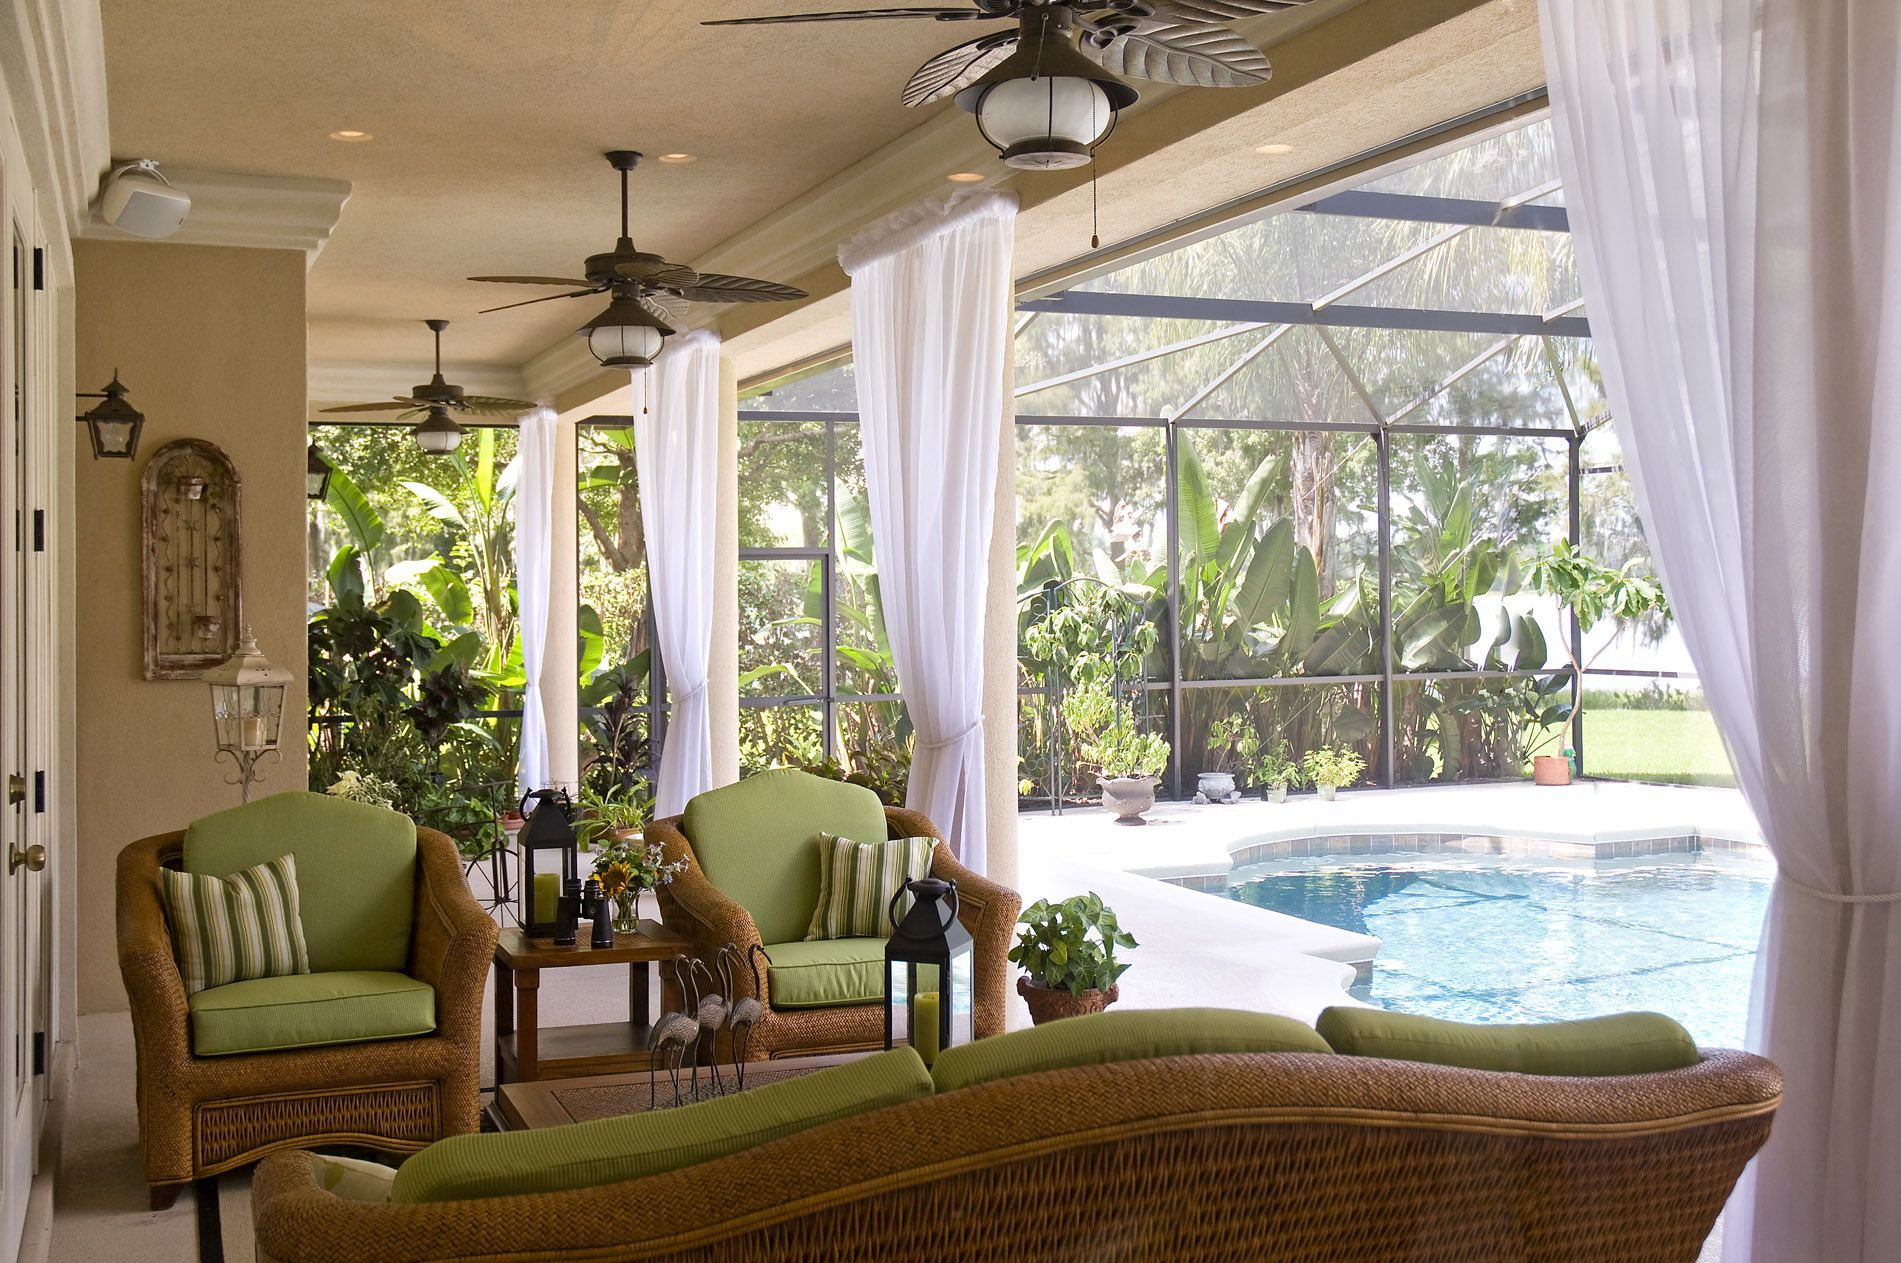 Heidi Sowatsky S Decorating Blog Sunroom Decorating Lanai Decorating Pool Decor